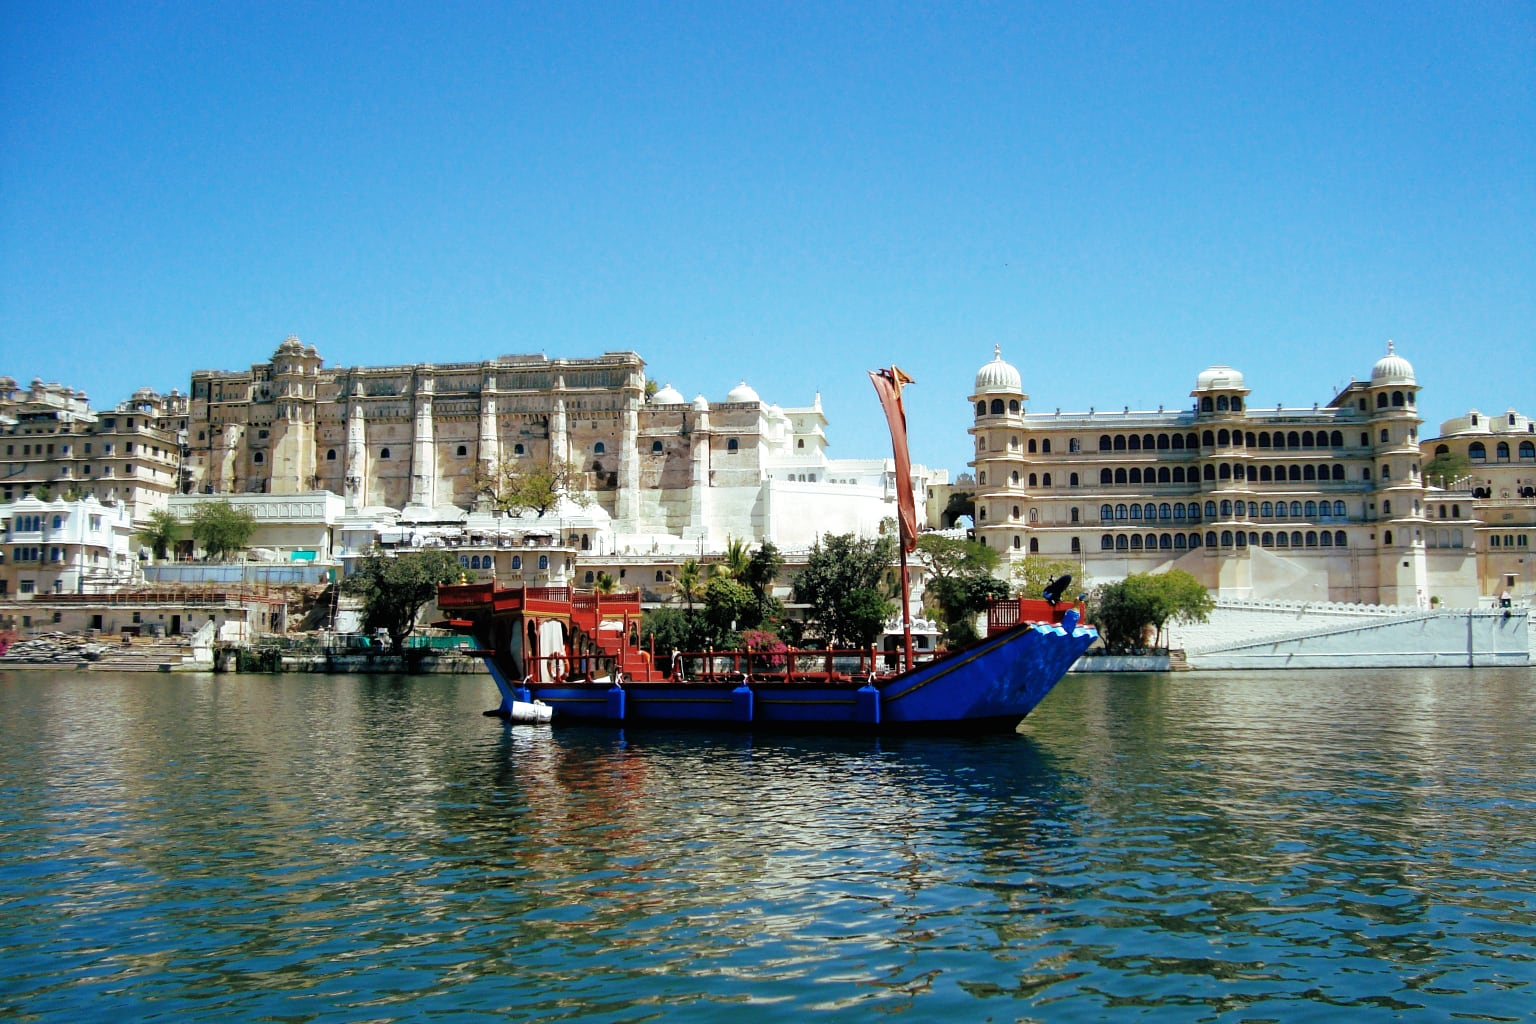 City Palace of Udaipur, India.jpg